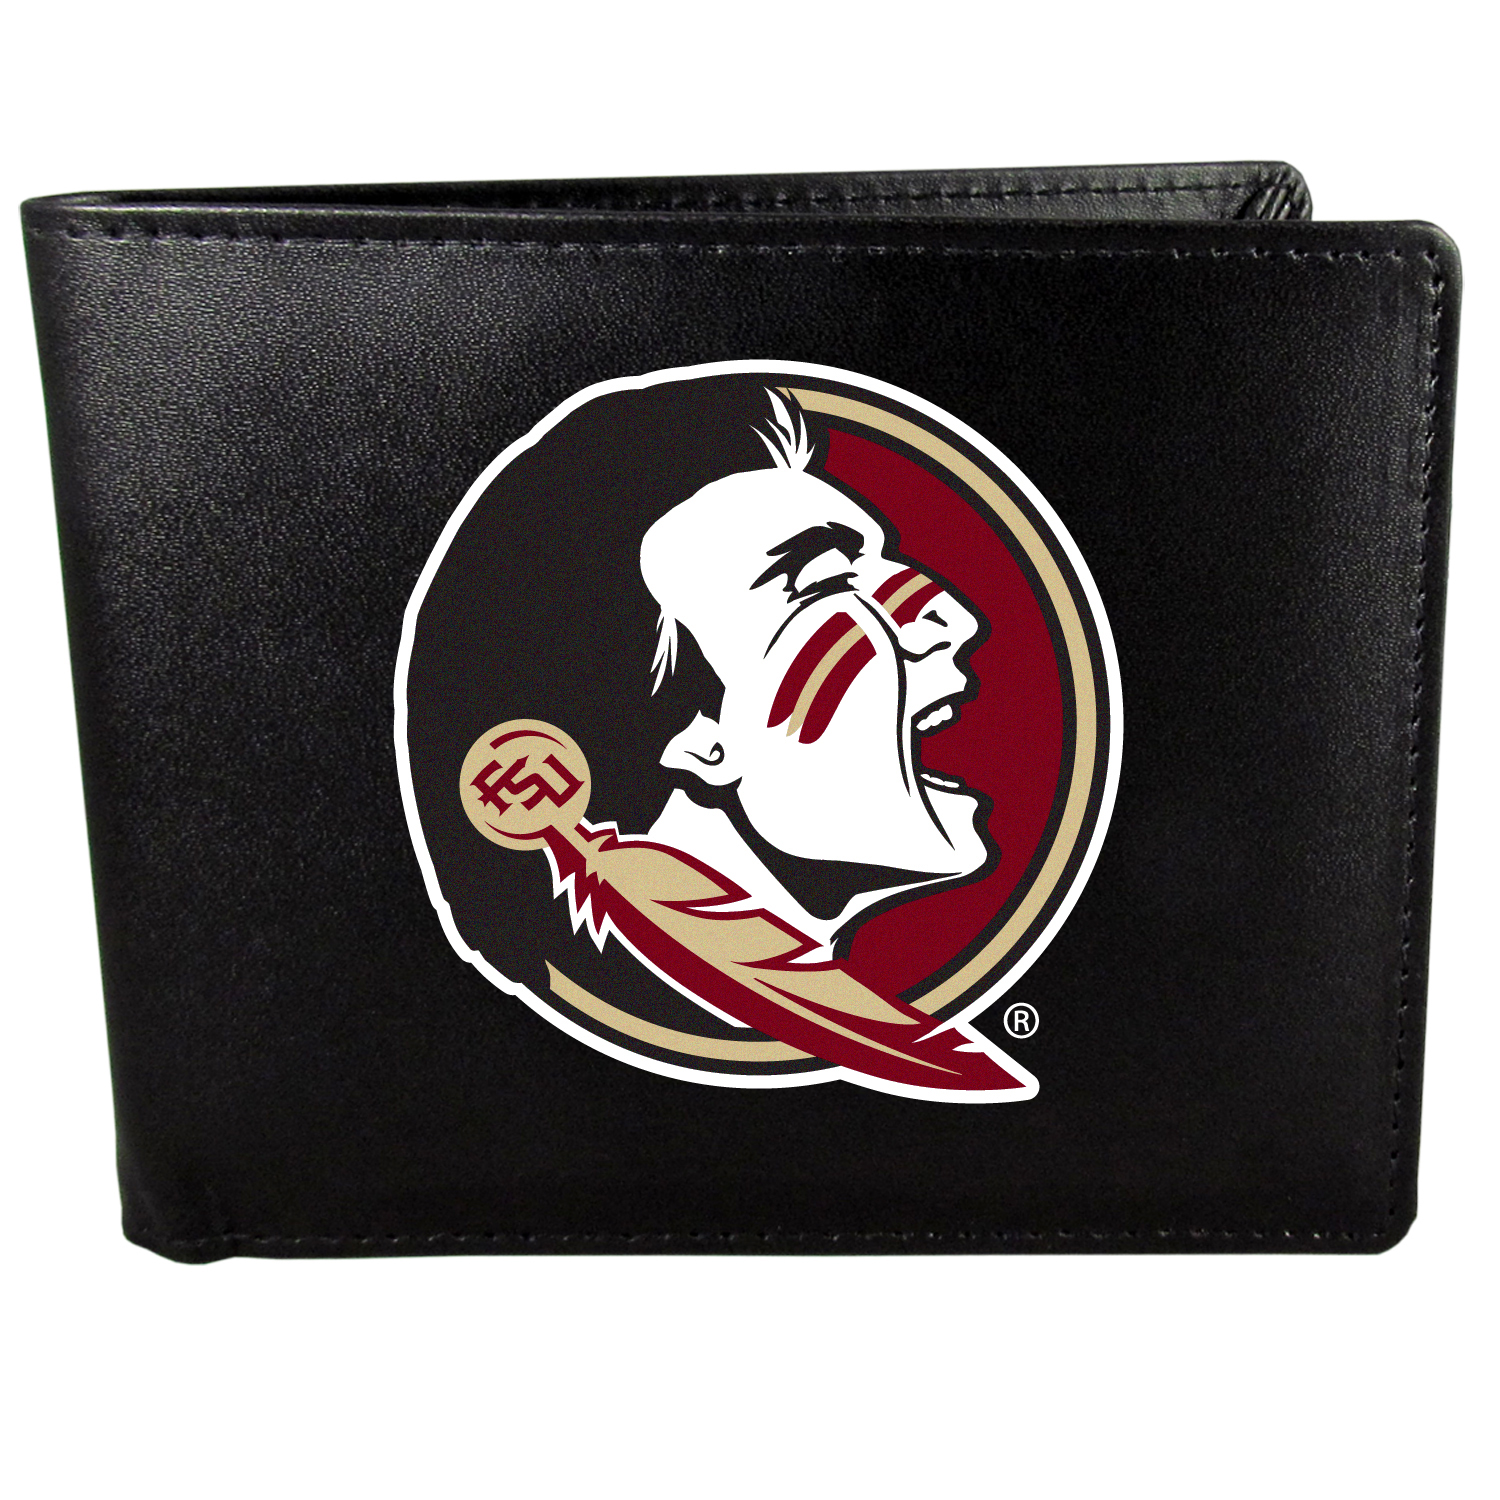 Florida St. Seminoles Bi-fold Wallet Large Logo - Sports fans do not have to sacrifice style with this classic bi-fold wallet that sports the Florida St. Seminoles?extra large logo. This men's fashion accessory has a leather grain look and expert craftmanship for a quality wallet at a great price. The wallet features inner credit card slots, windowed ID slot and a large billfold pocket. The front of the wallet features a printed team logo.